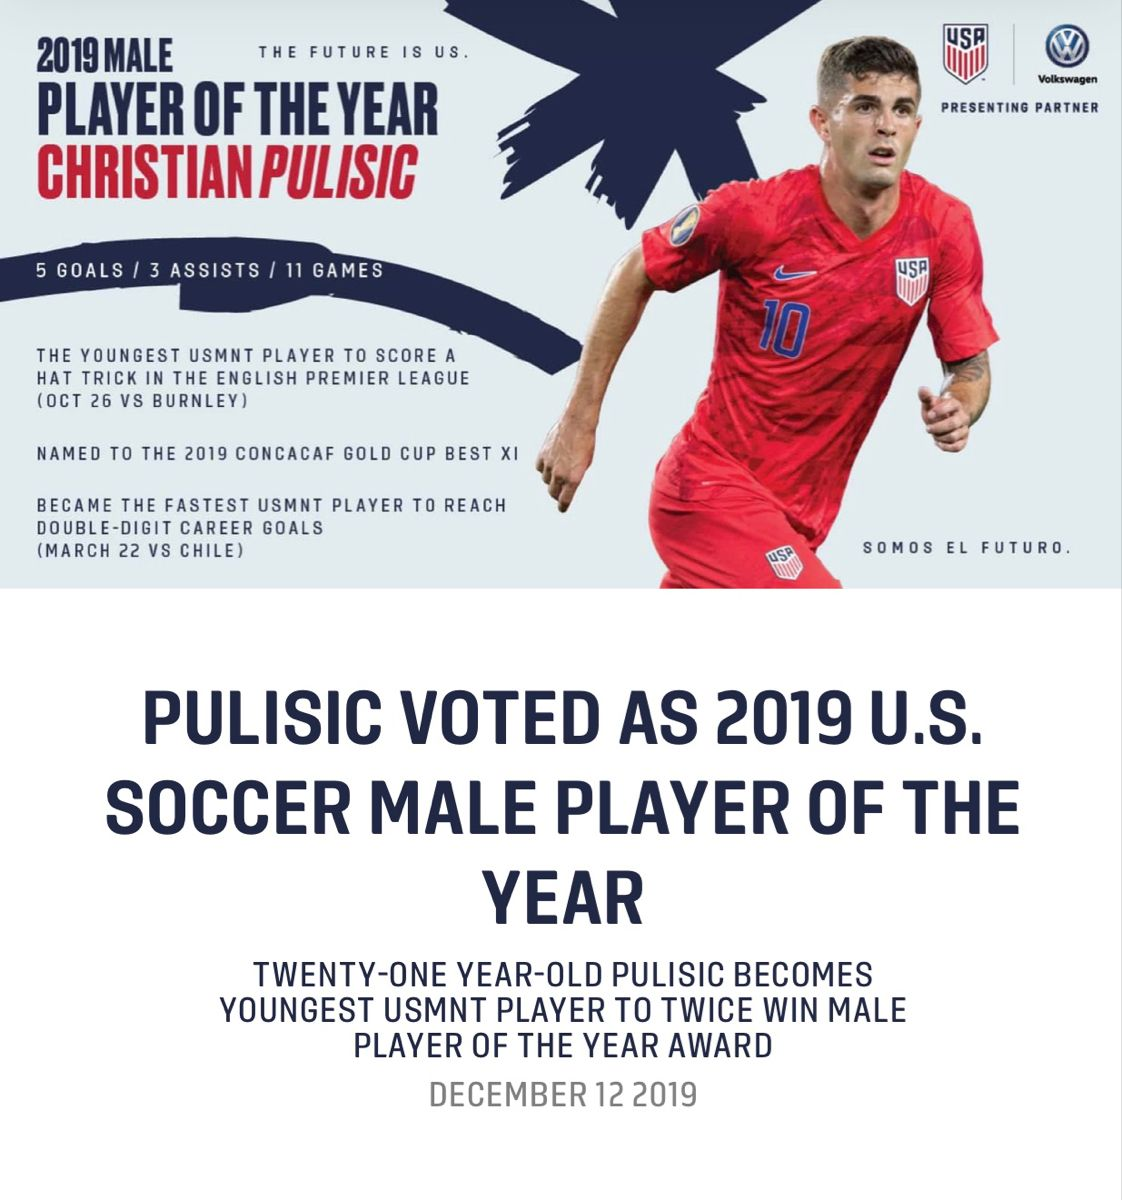 Pin By Ems On Christian Pulisic Christian Pulisic English Premier League Usmnt